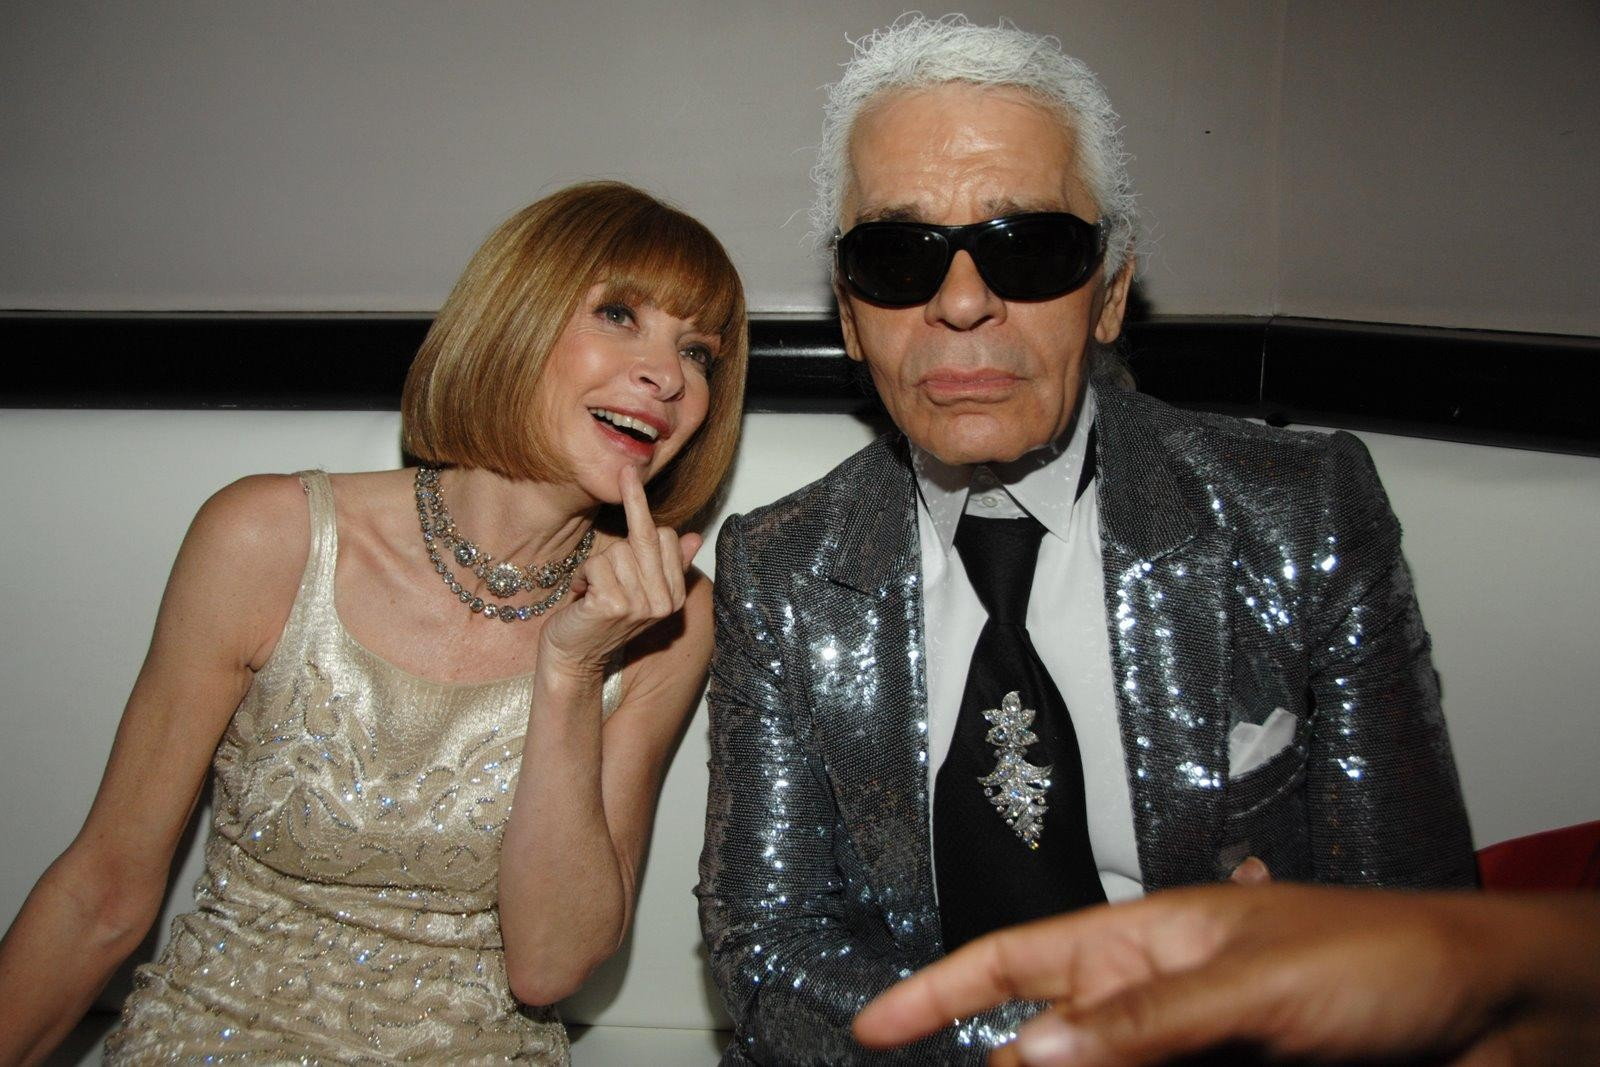 Karl Lagerfeld Creates Capsule Makeup Line for Sephora